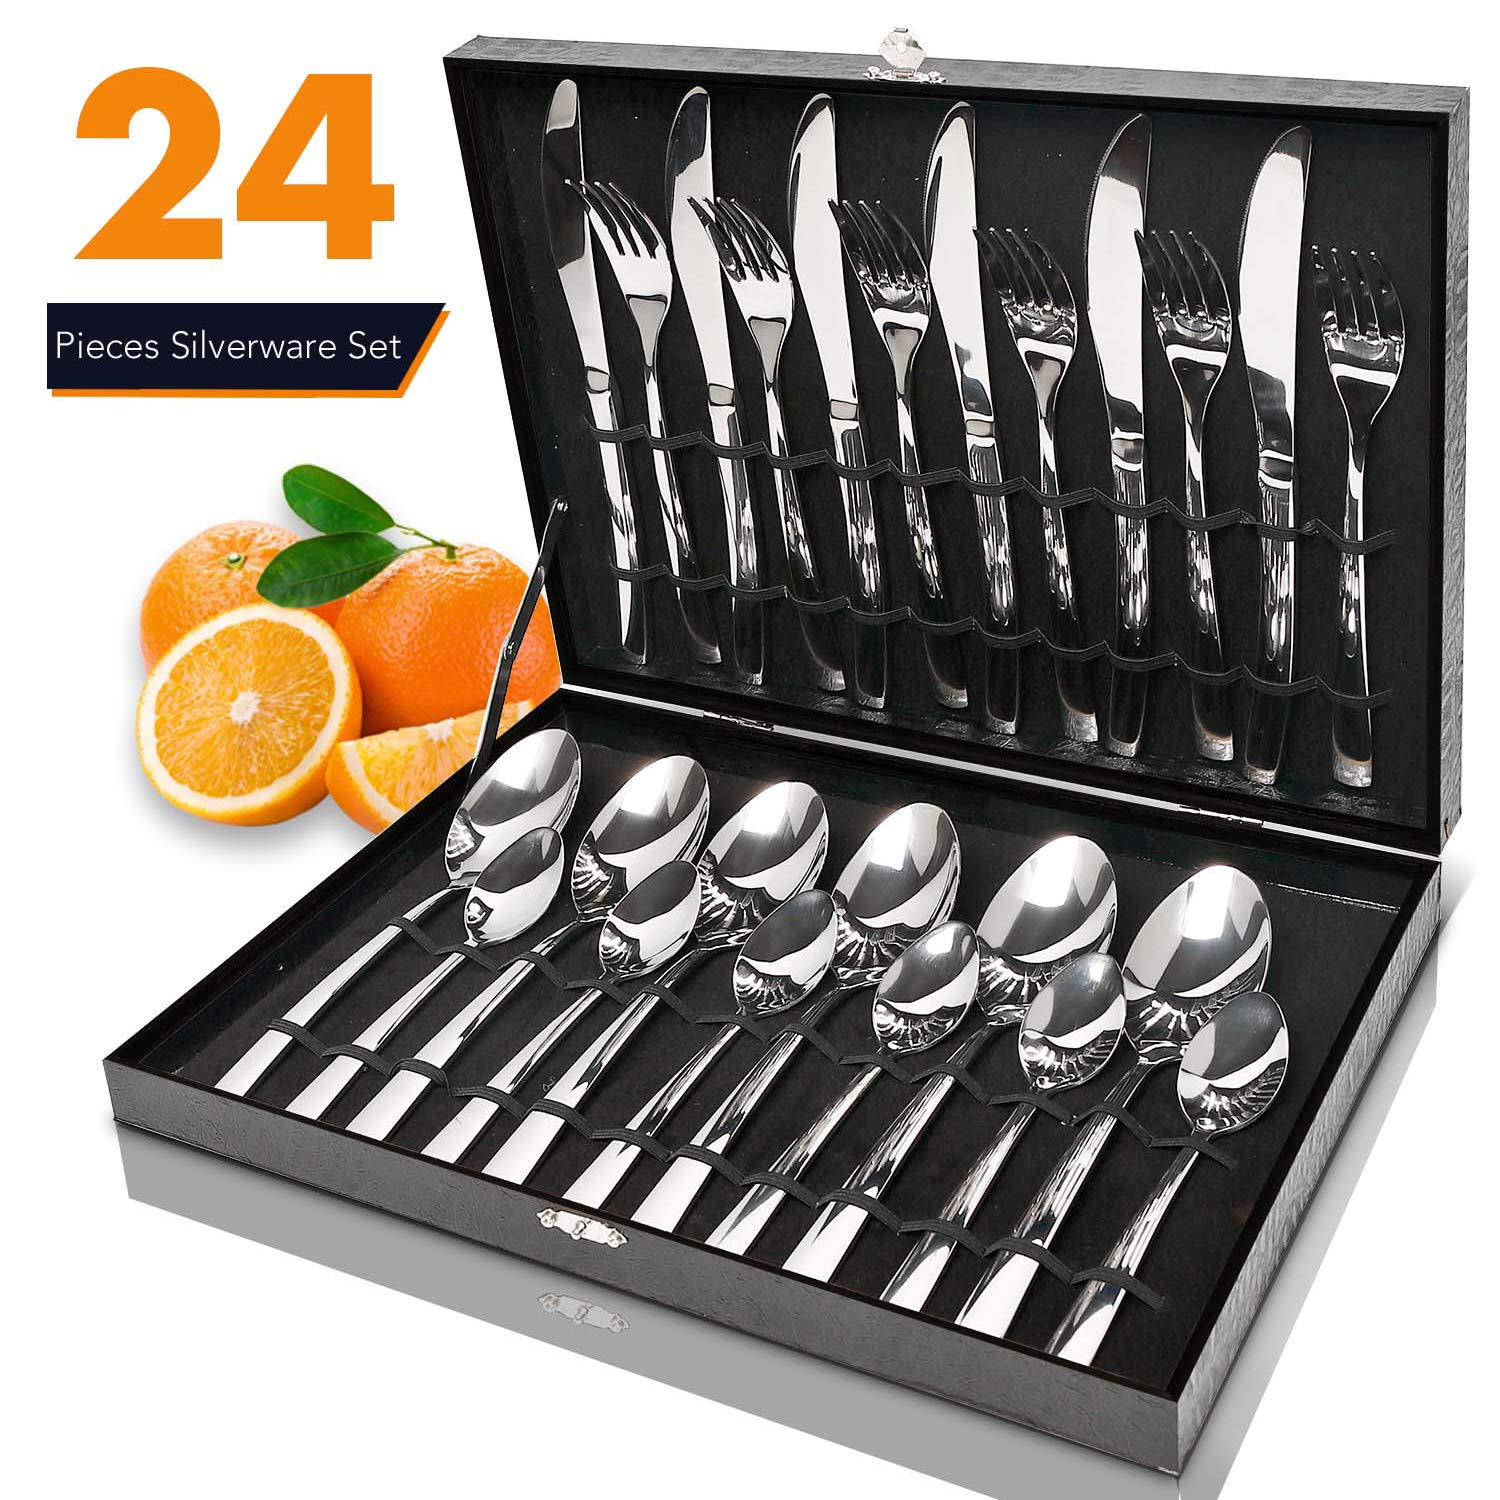 Silverware Set,Elegant Life 24-Piece Stainless Steel Flatware Sets High-grade Mirror Polishing Cutlery Sets,Multipurpose Use for Kitchen,Restaurant Tableware Utensil Sets with Gift Box Service for 6